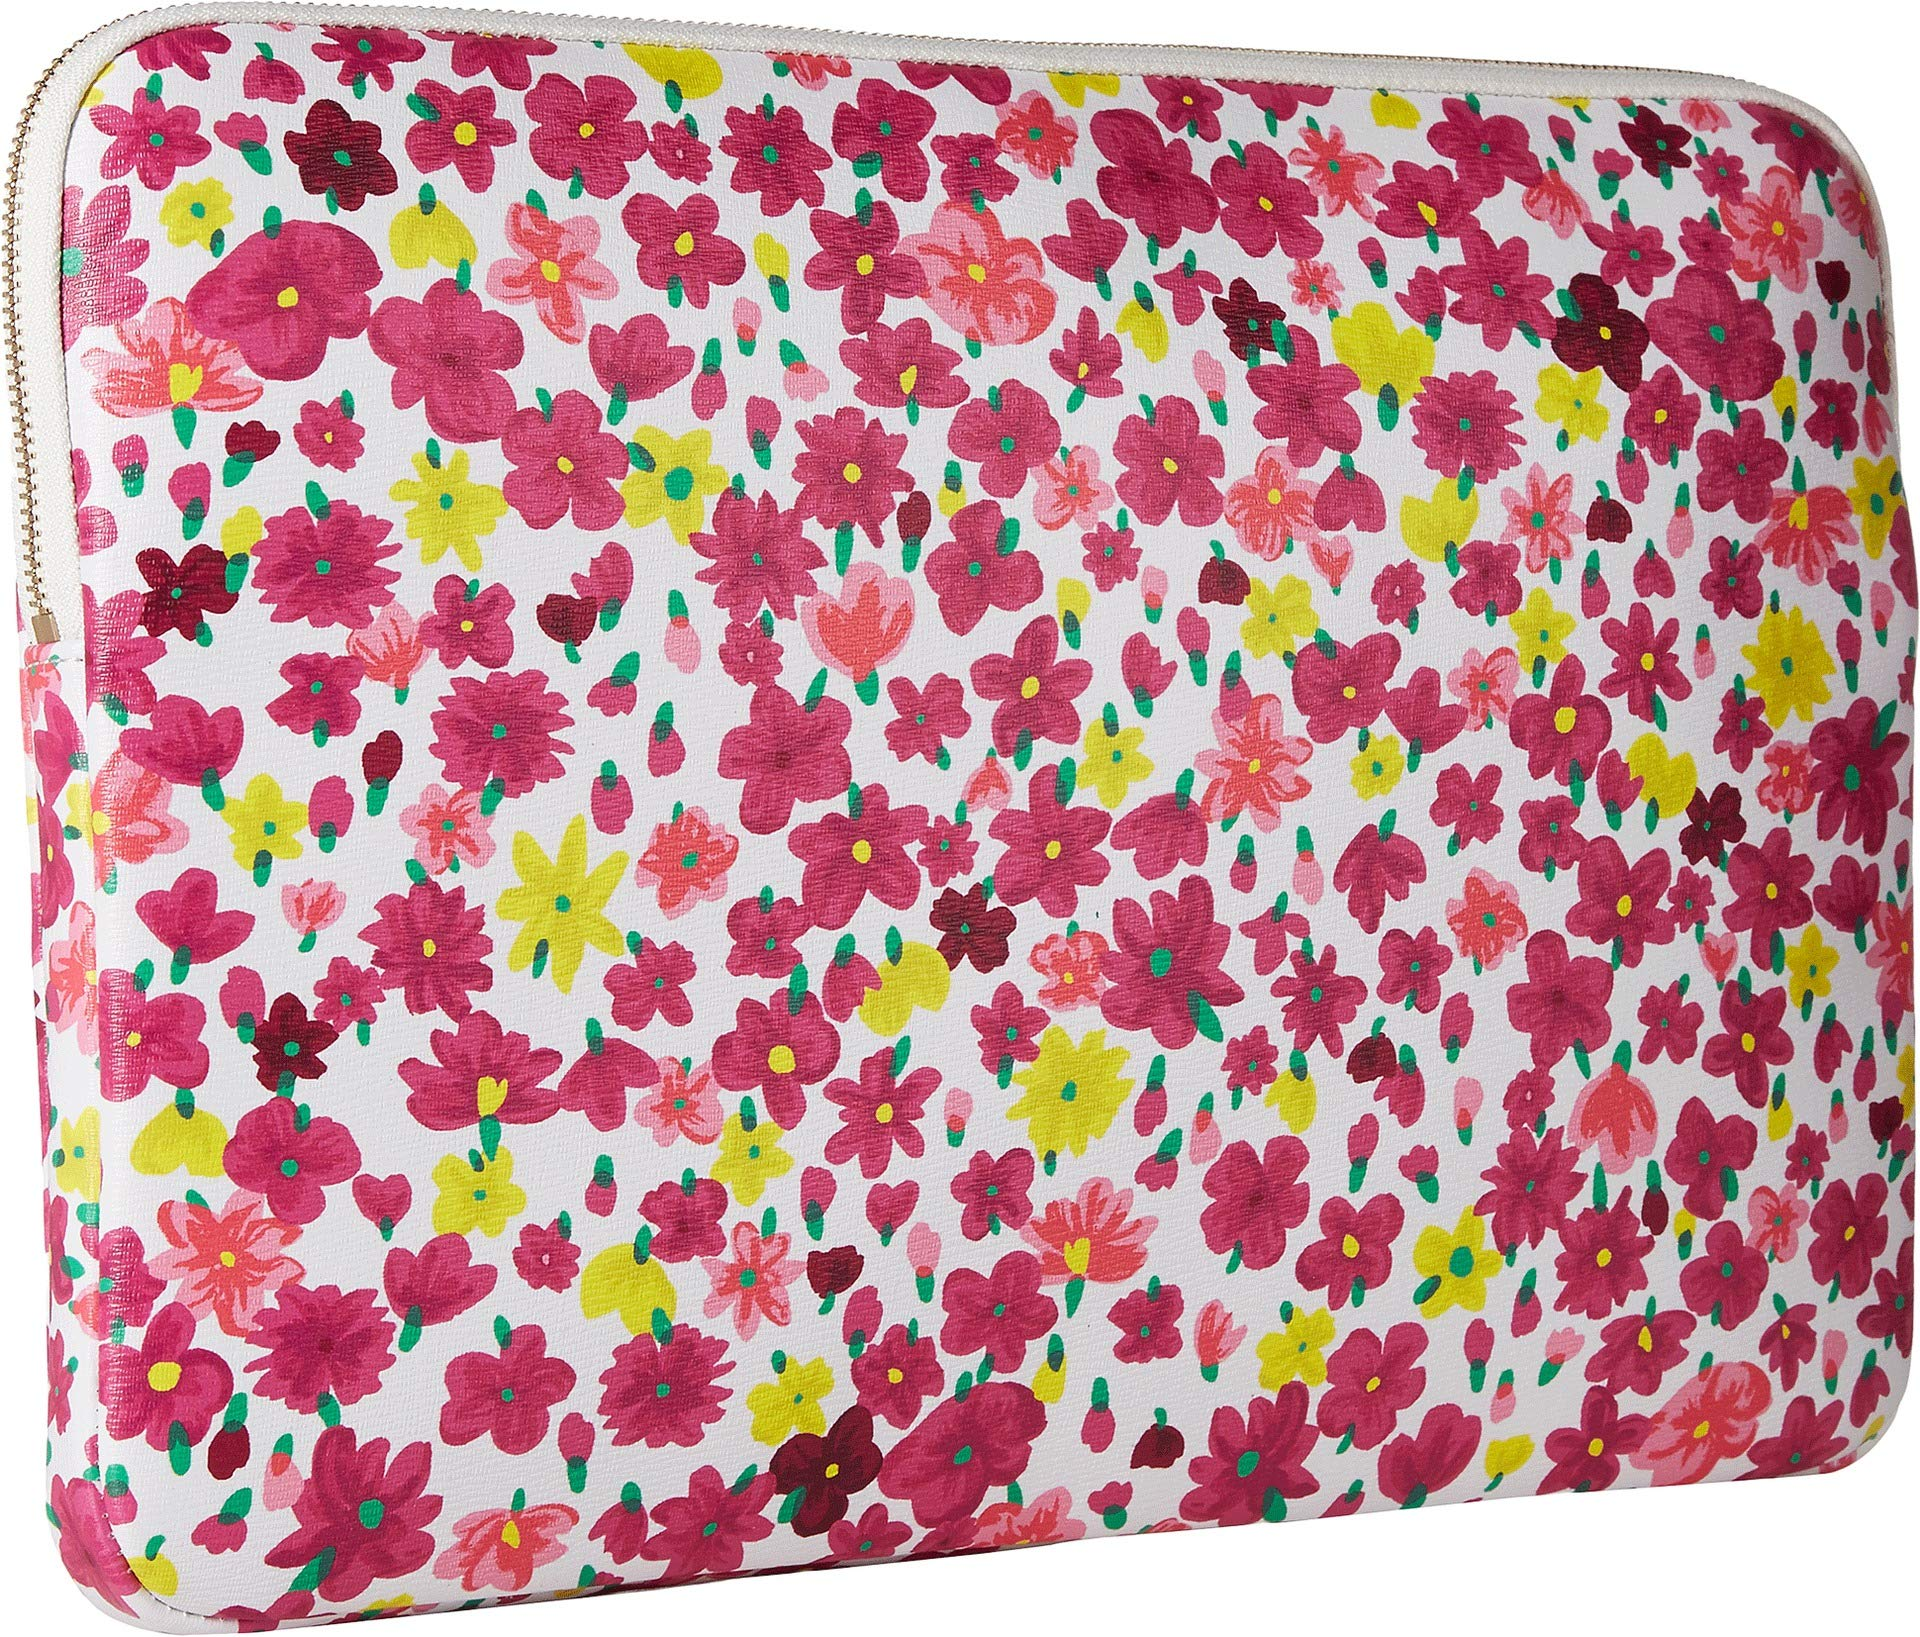 Kate Spade New York Women's Marker Floral Universal Laptop Sleeve Optic White Multi One Size by Kate Spade New York (Image #2)